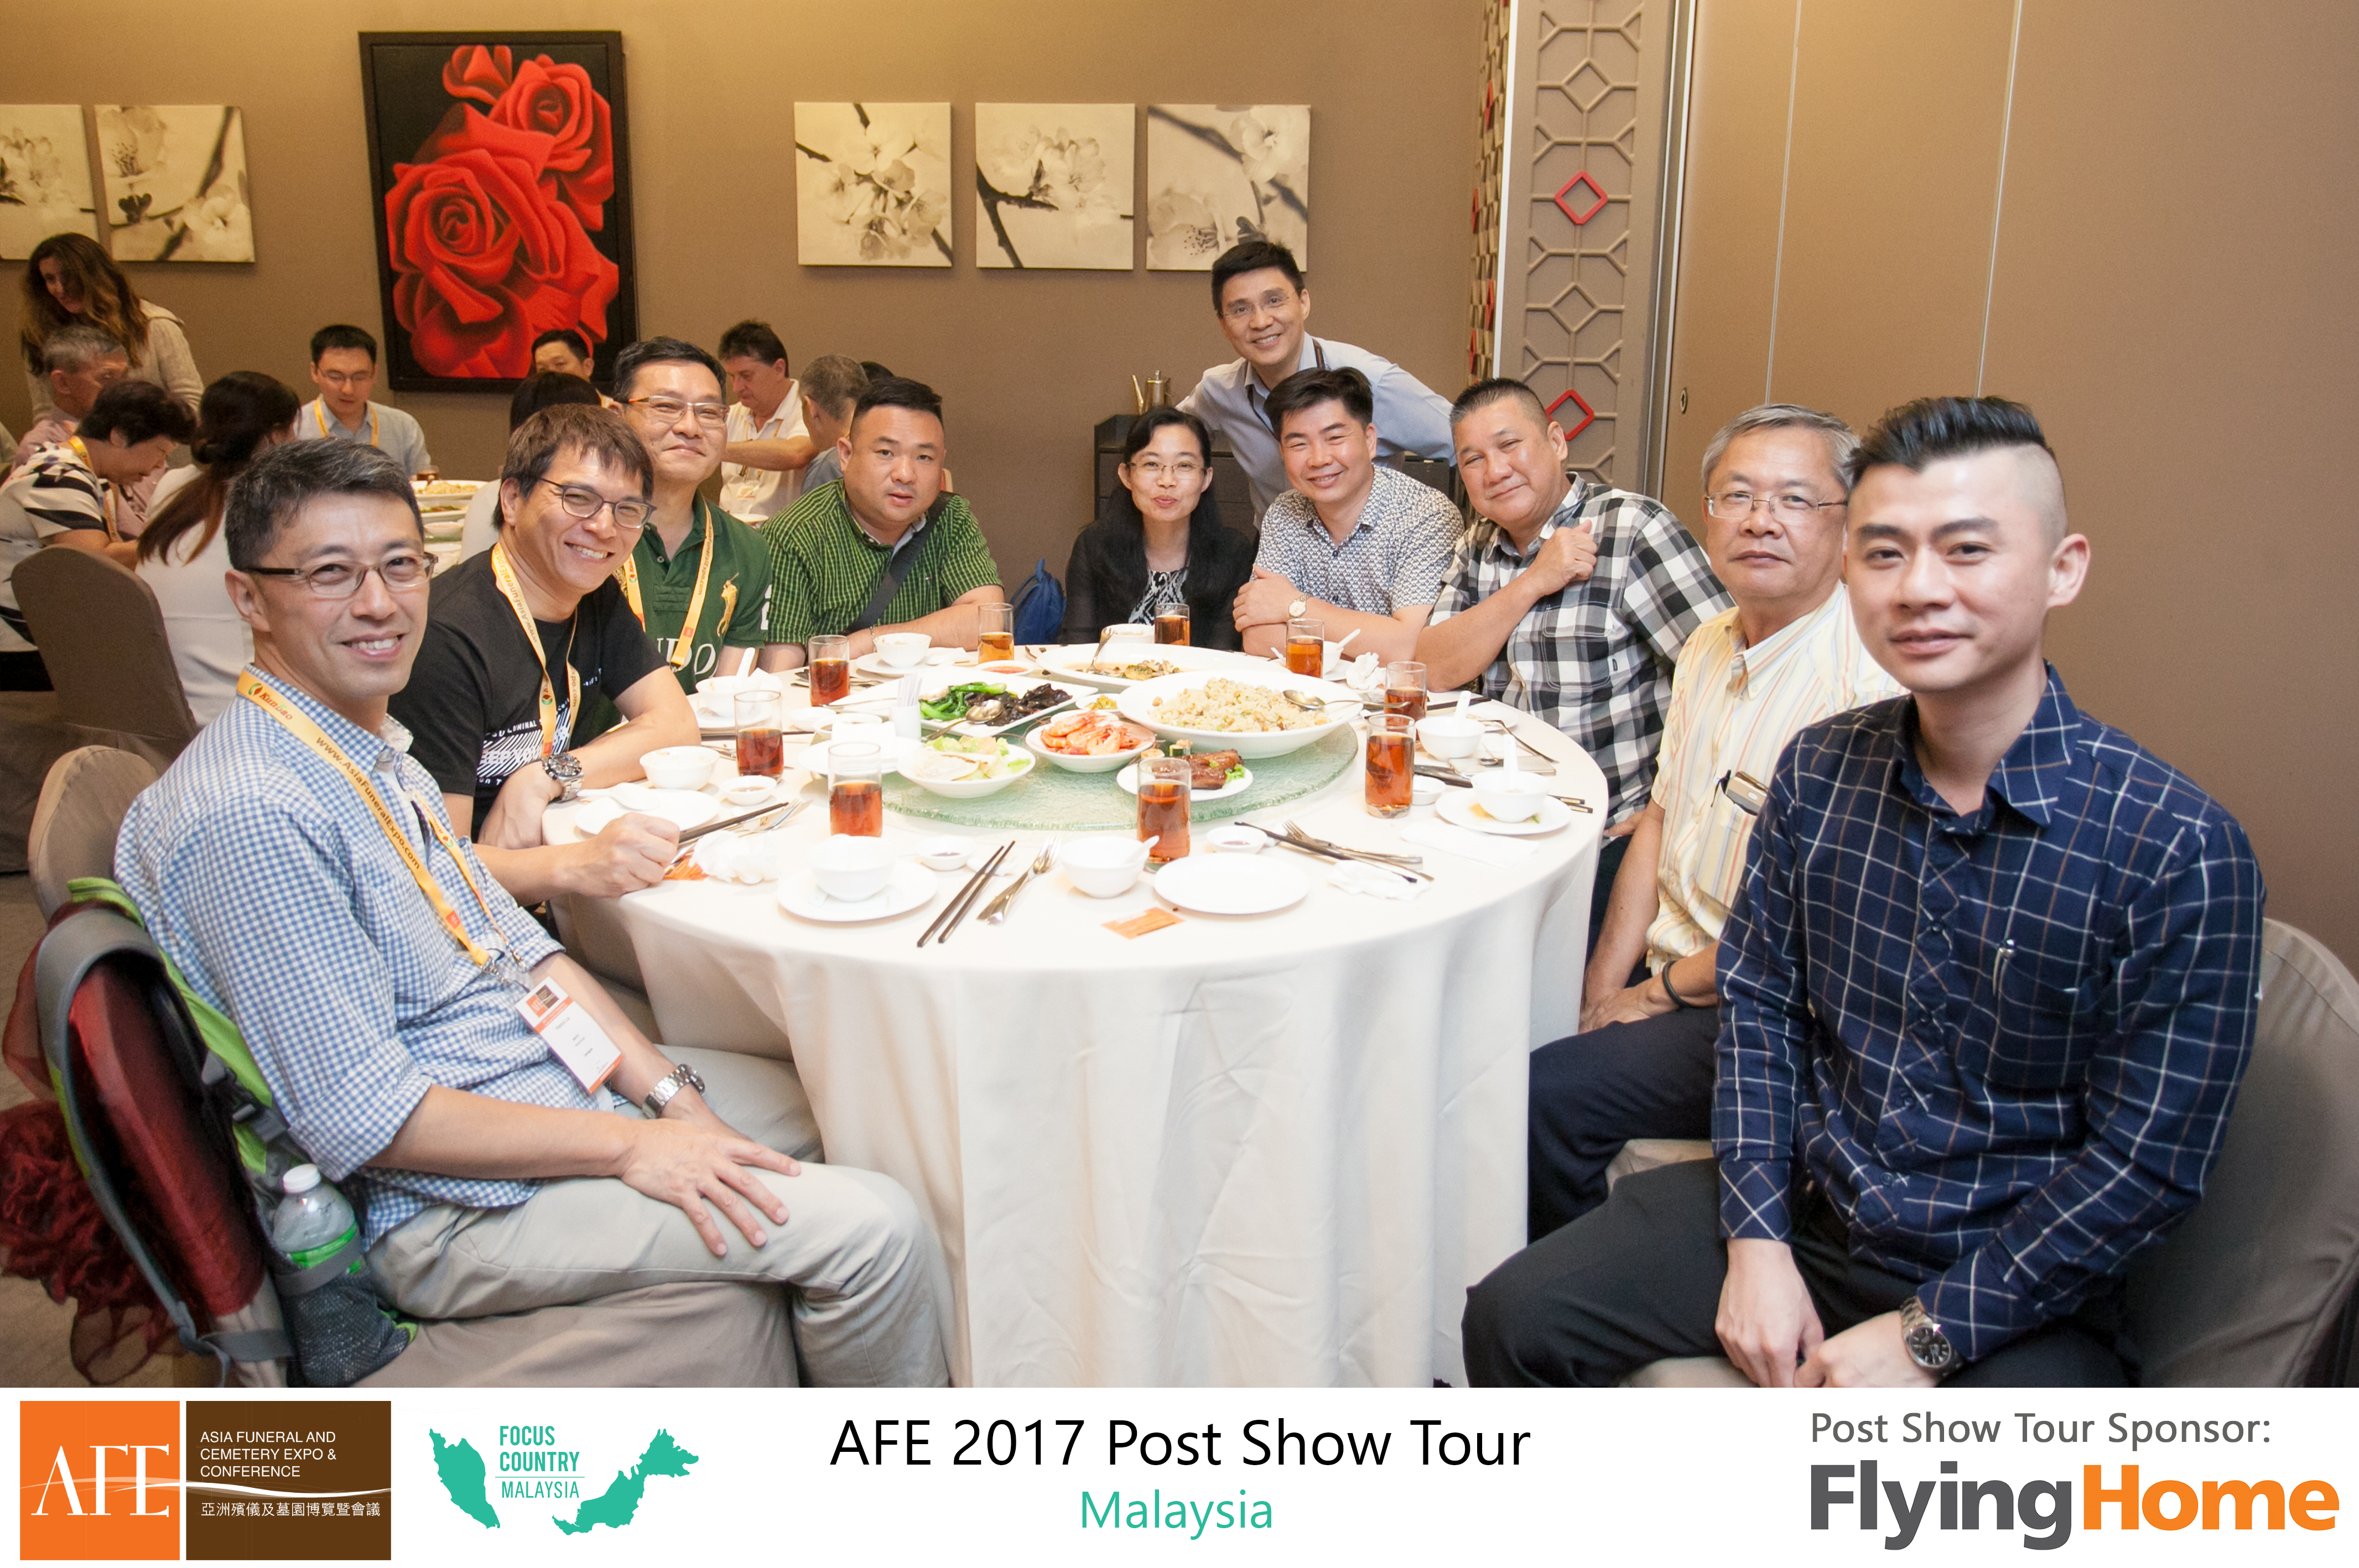 AFE Post Show Tour 2017 Day 1 - 25